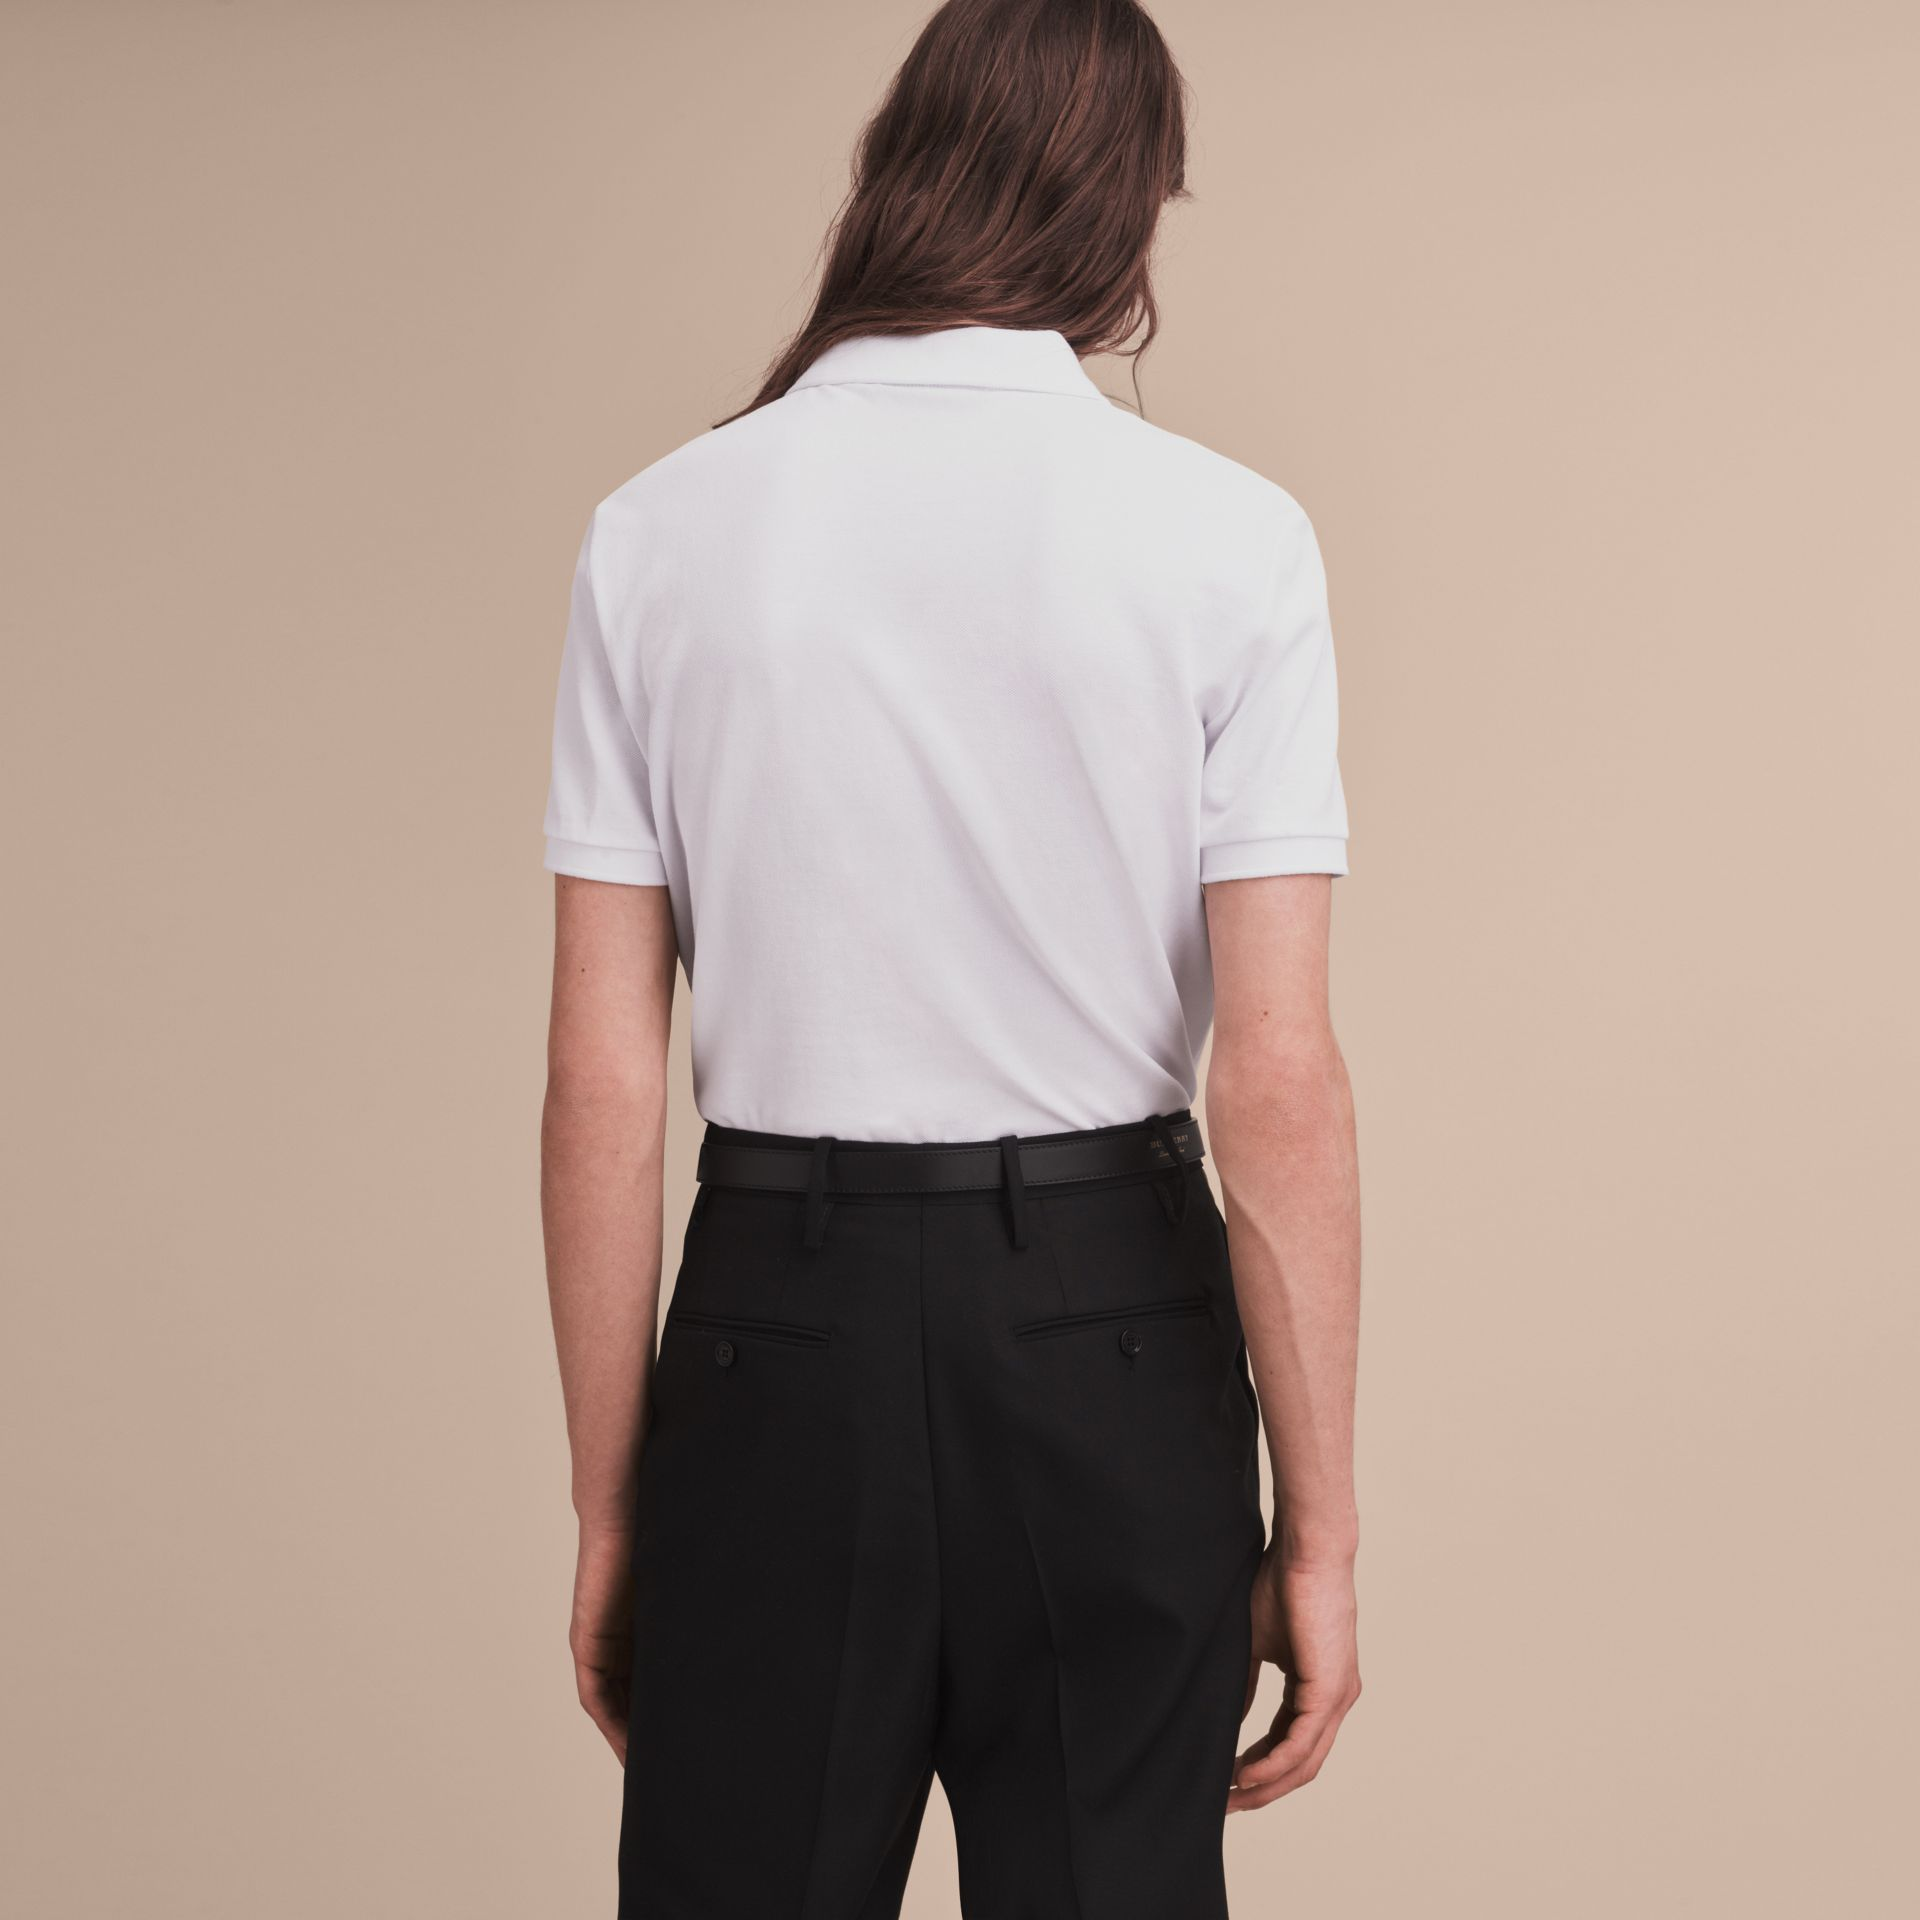 Pallas Heads Appliqué Cotton Polo Shirt in White - Men | Burberry Australia - gallery image 3